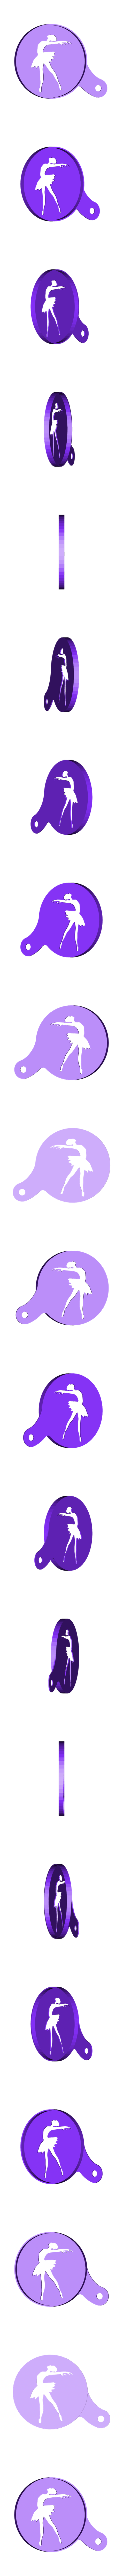 Coffee stencil - ballerina.stl Download STL file Chocolate-Coffee stencils Classic collection • 3D printing model, InSpace